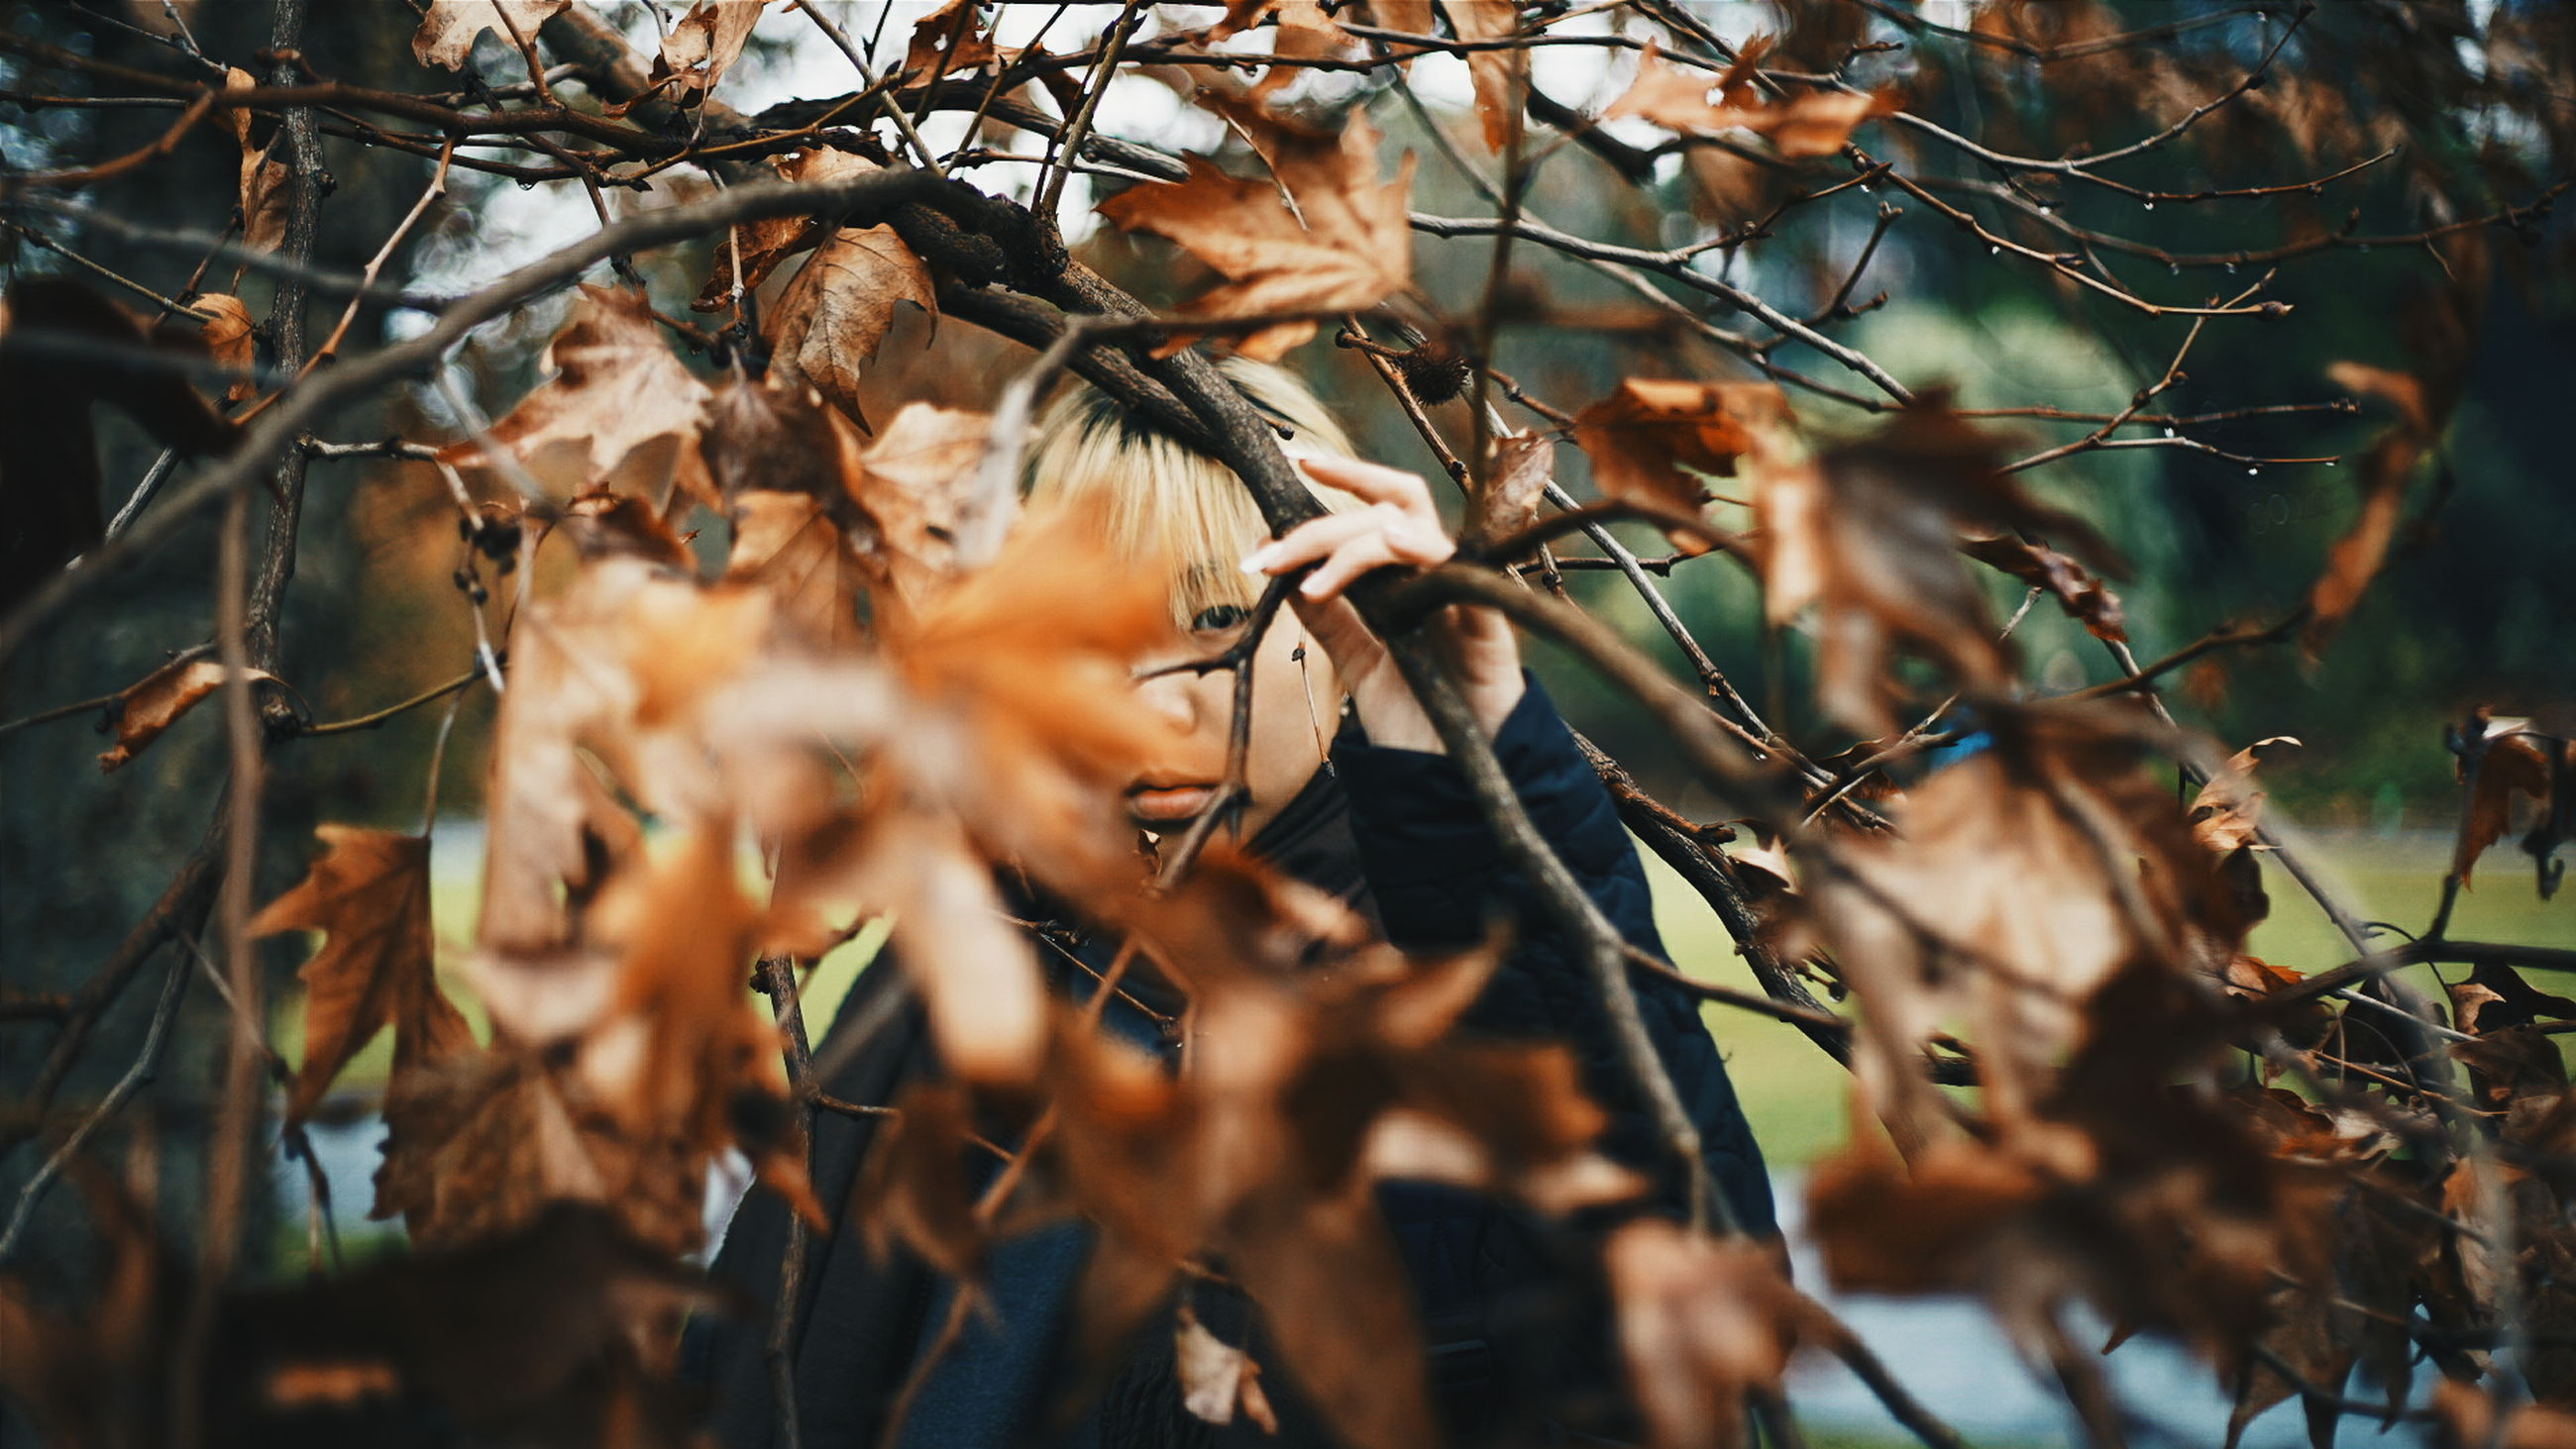 leaf, branch, autumn, leaves, growth, nature, close-up, focus on foreground, tree, twig, change, selective focus, plant, day, tranquility, outdoors, no people, beauty in nature, full frame, backgrounds